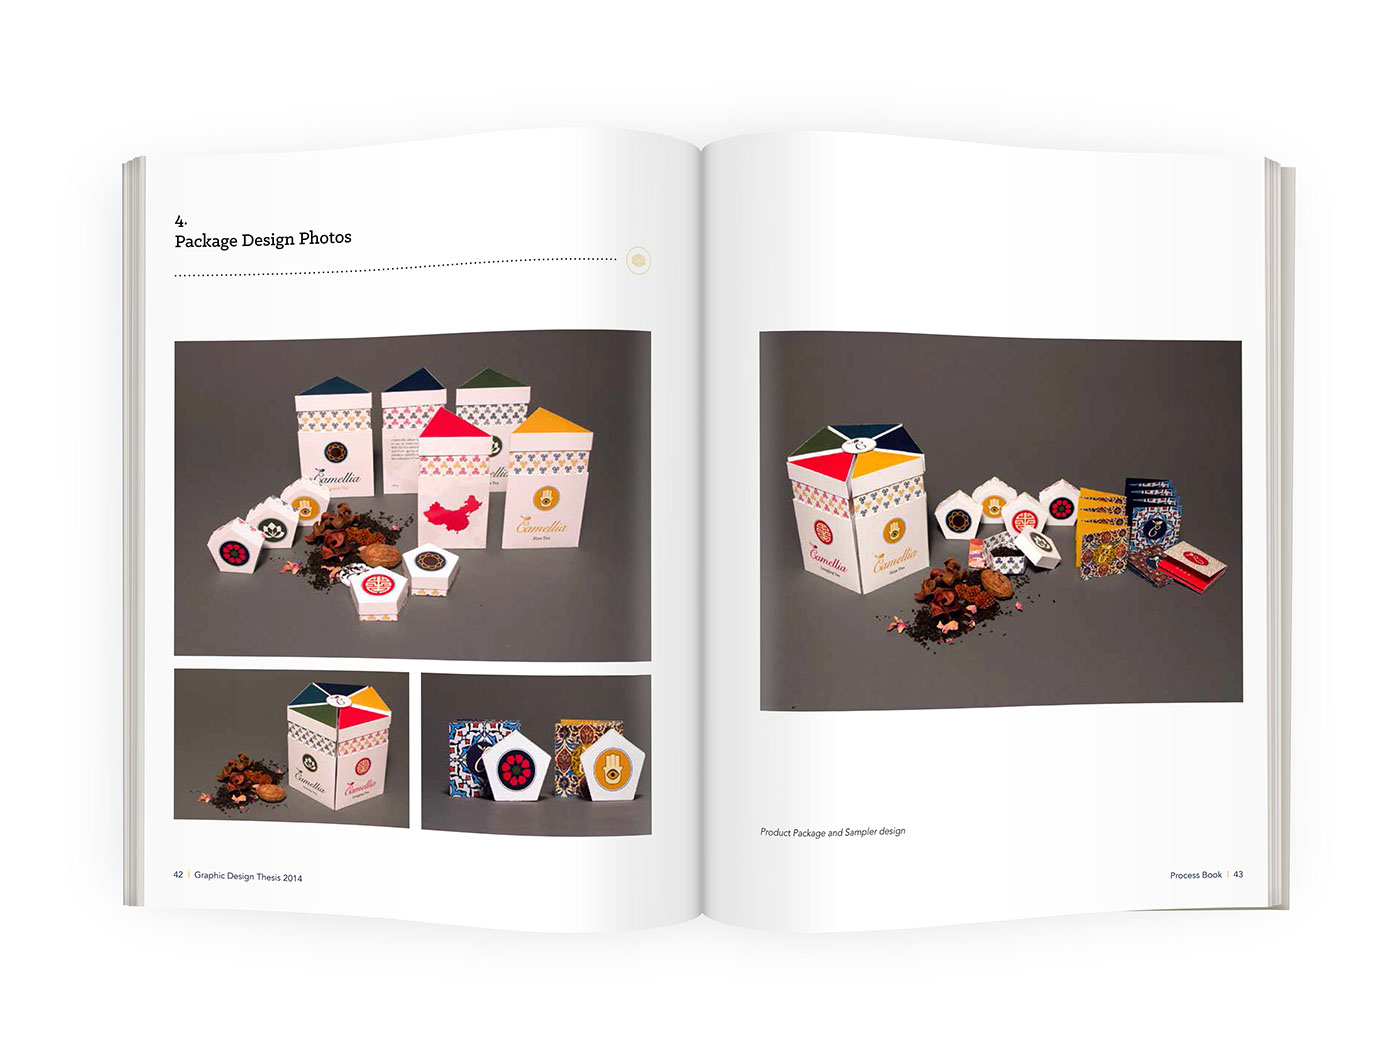 graphic design thesis book